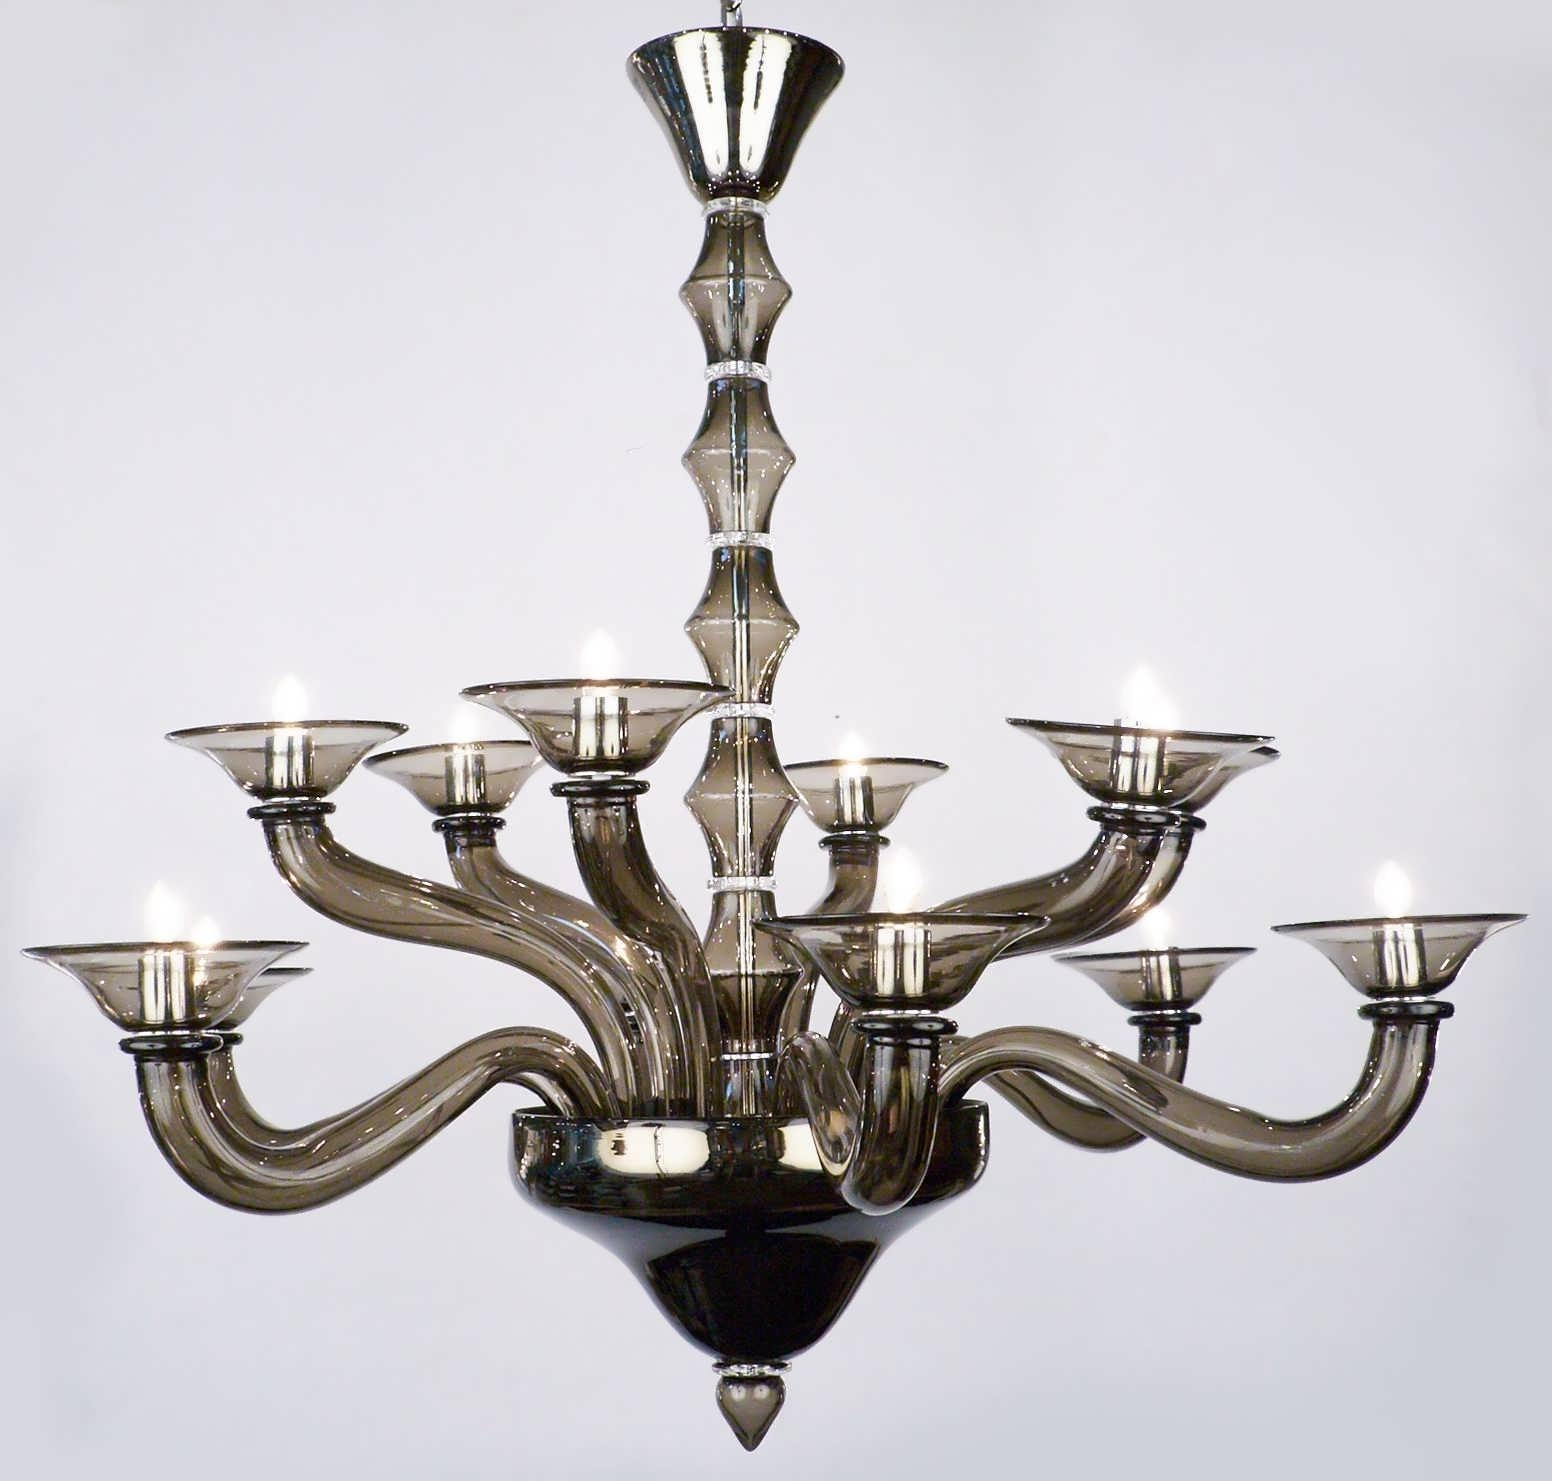 Latest Chandeliers Design : Magnificent Blown Glass Chandelier Drum Intended For Modern Italian Chandeliers (View 14 of 20)